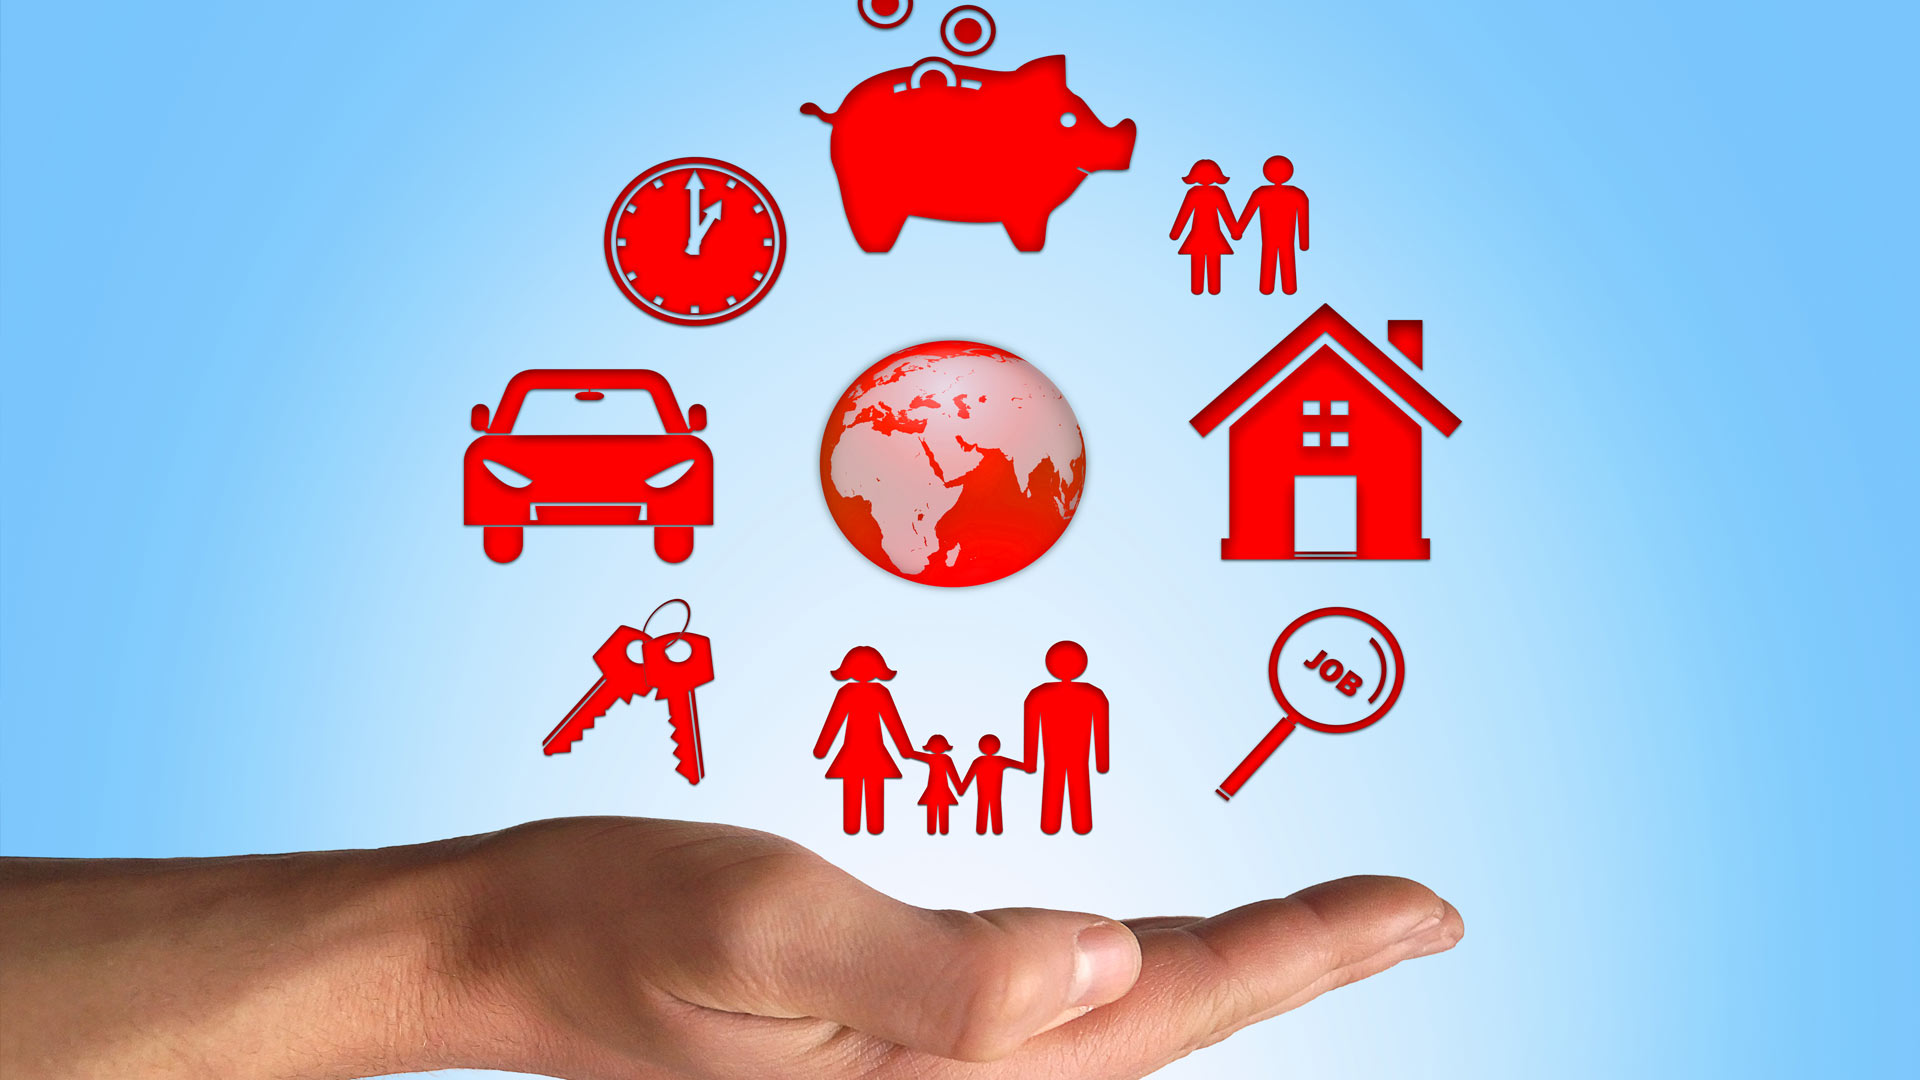 Car insurance leuven (autoverzekeringleuven)is available at fair prices for customers